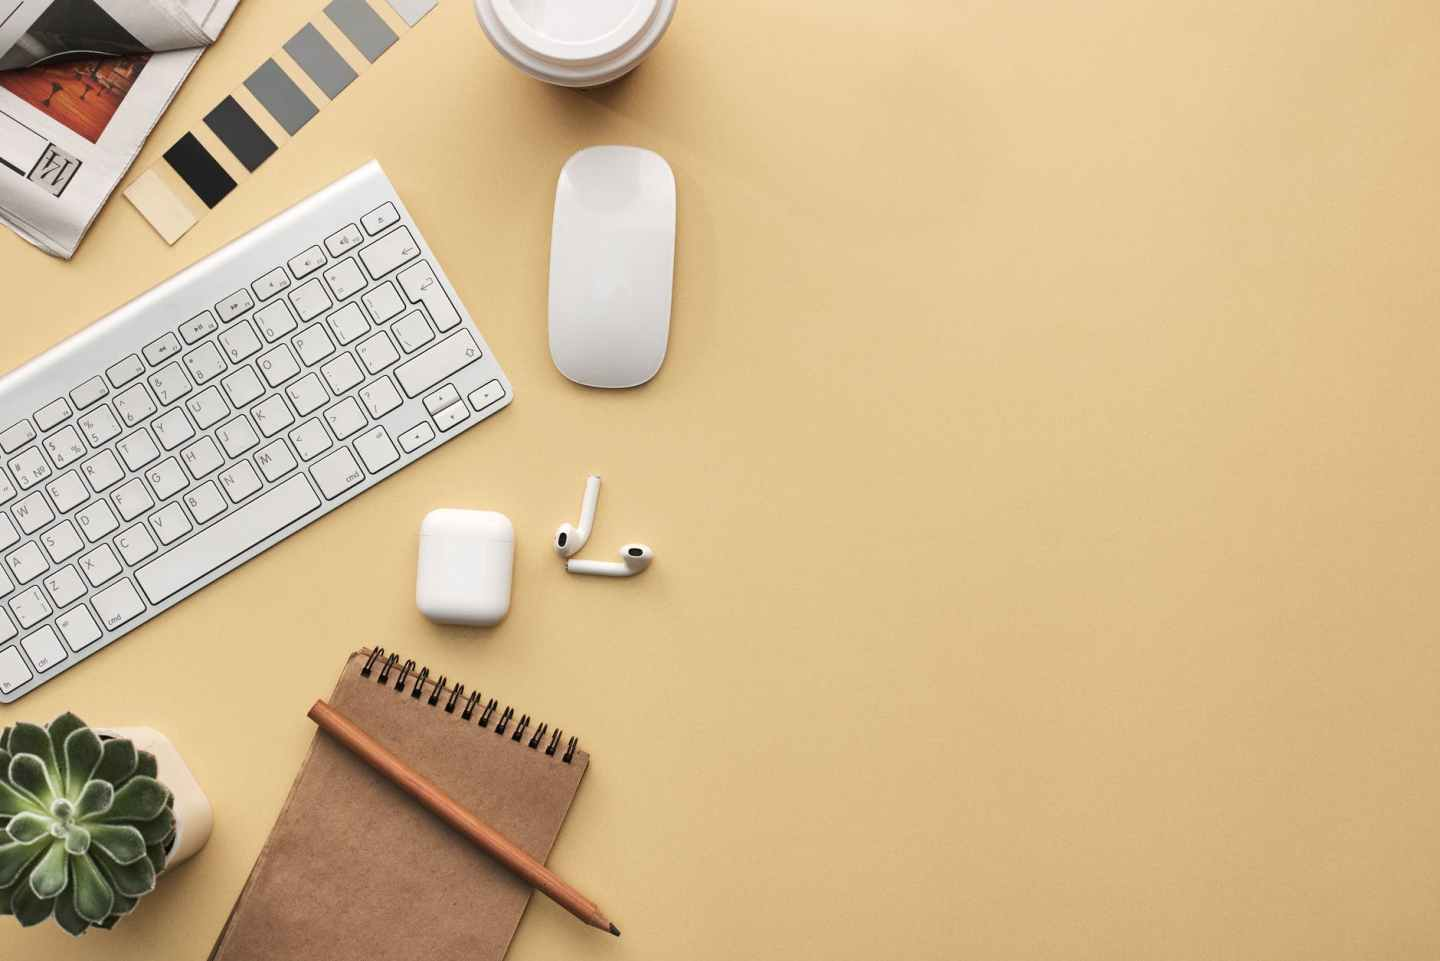 keyboard and mouse on beige background